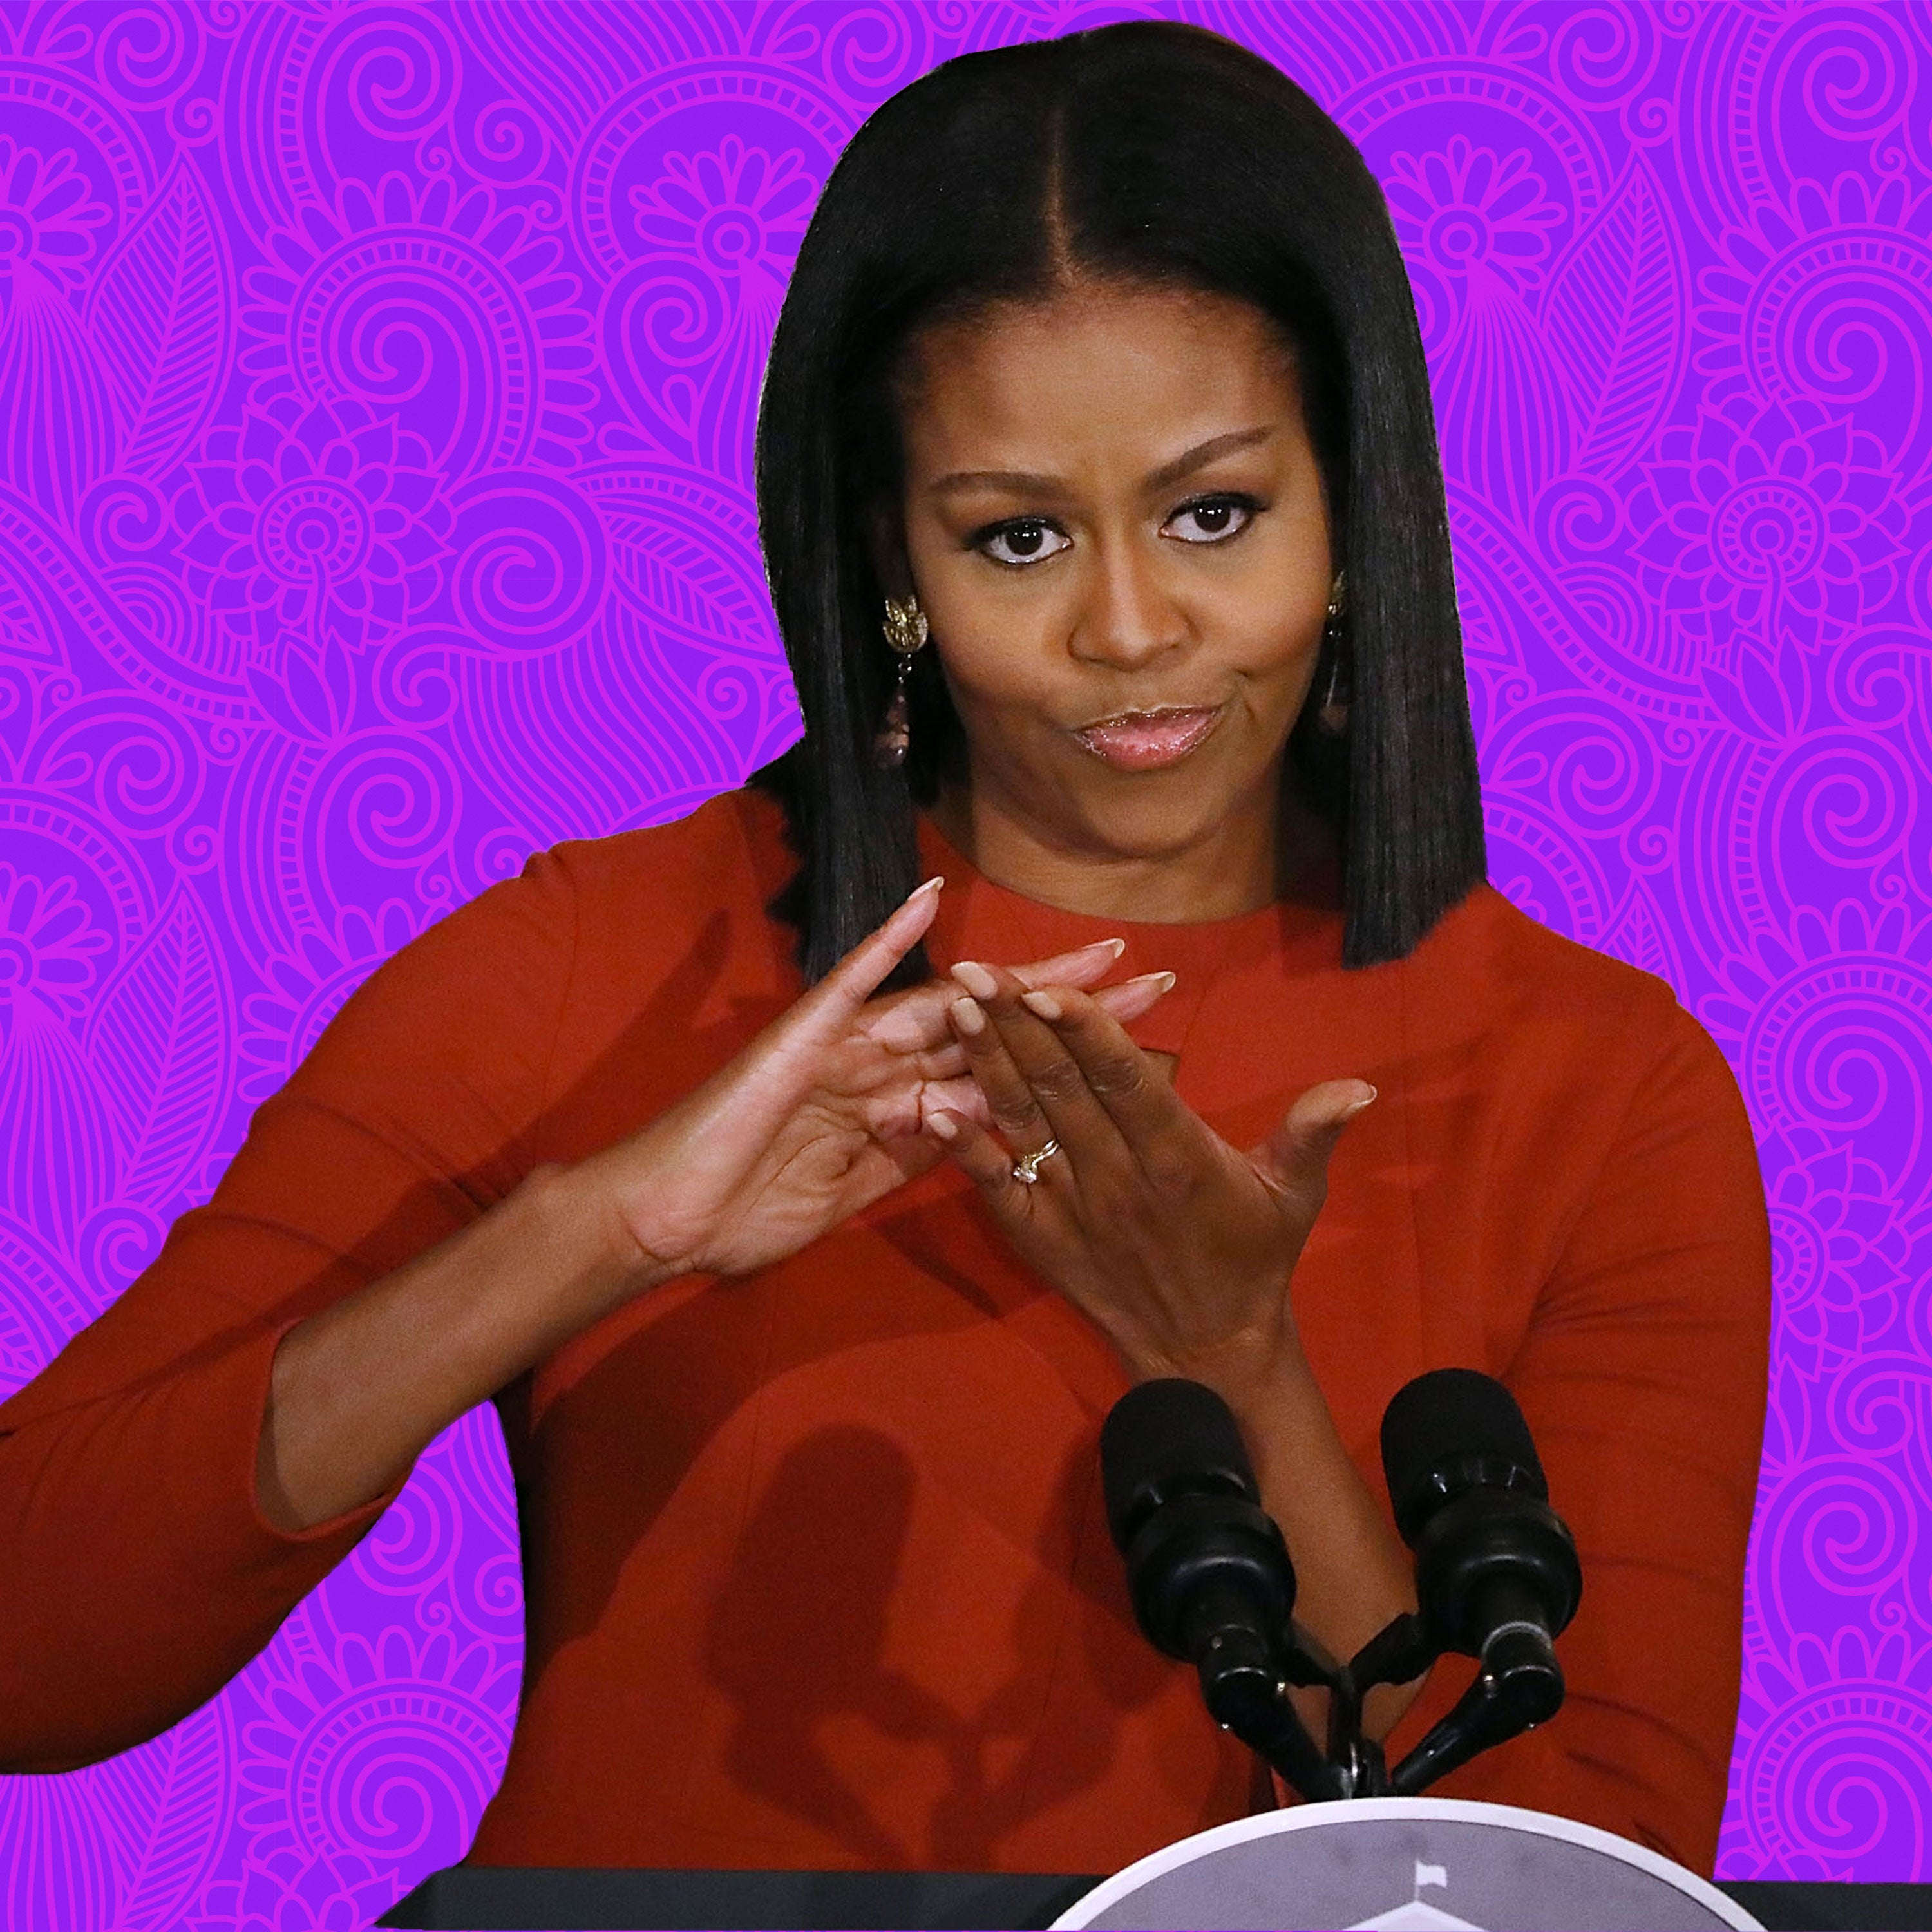 Tiny Tresses: Recreating Michelle Obama's Laid Mane